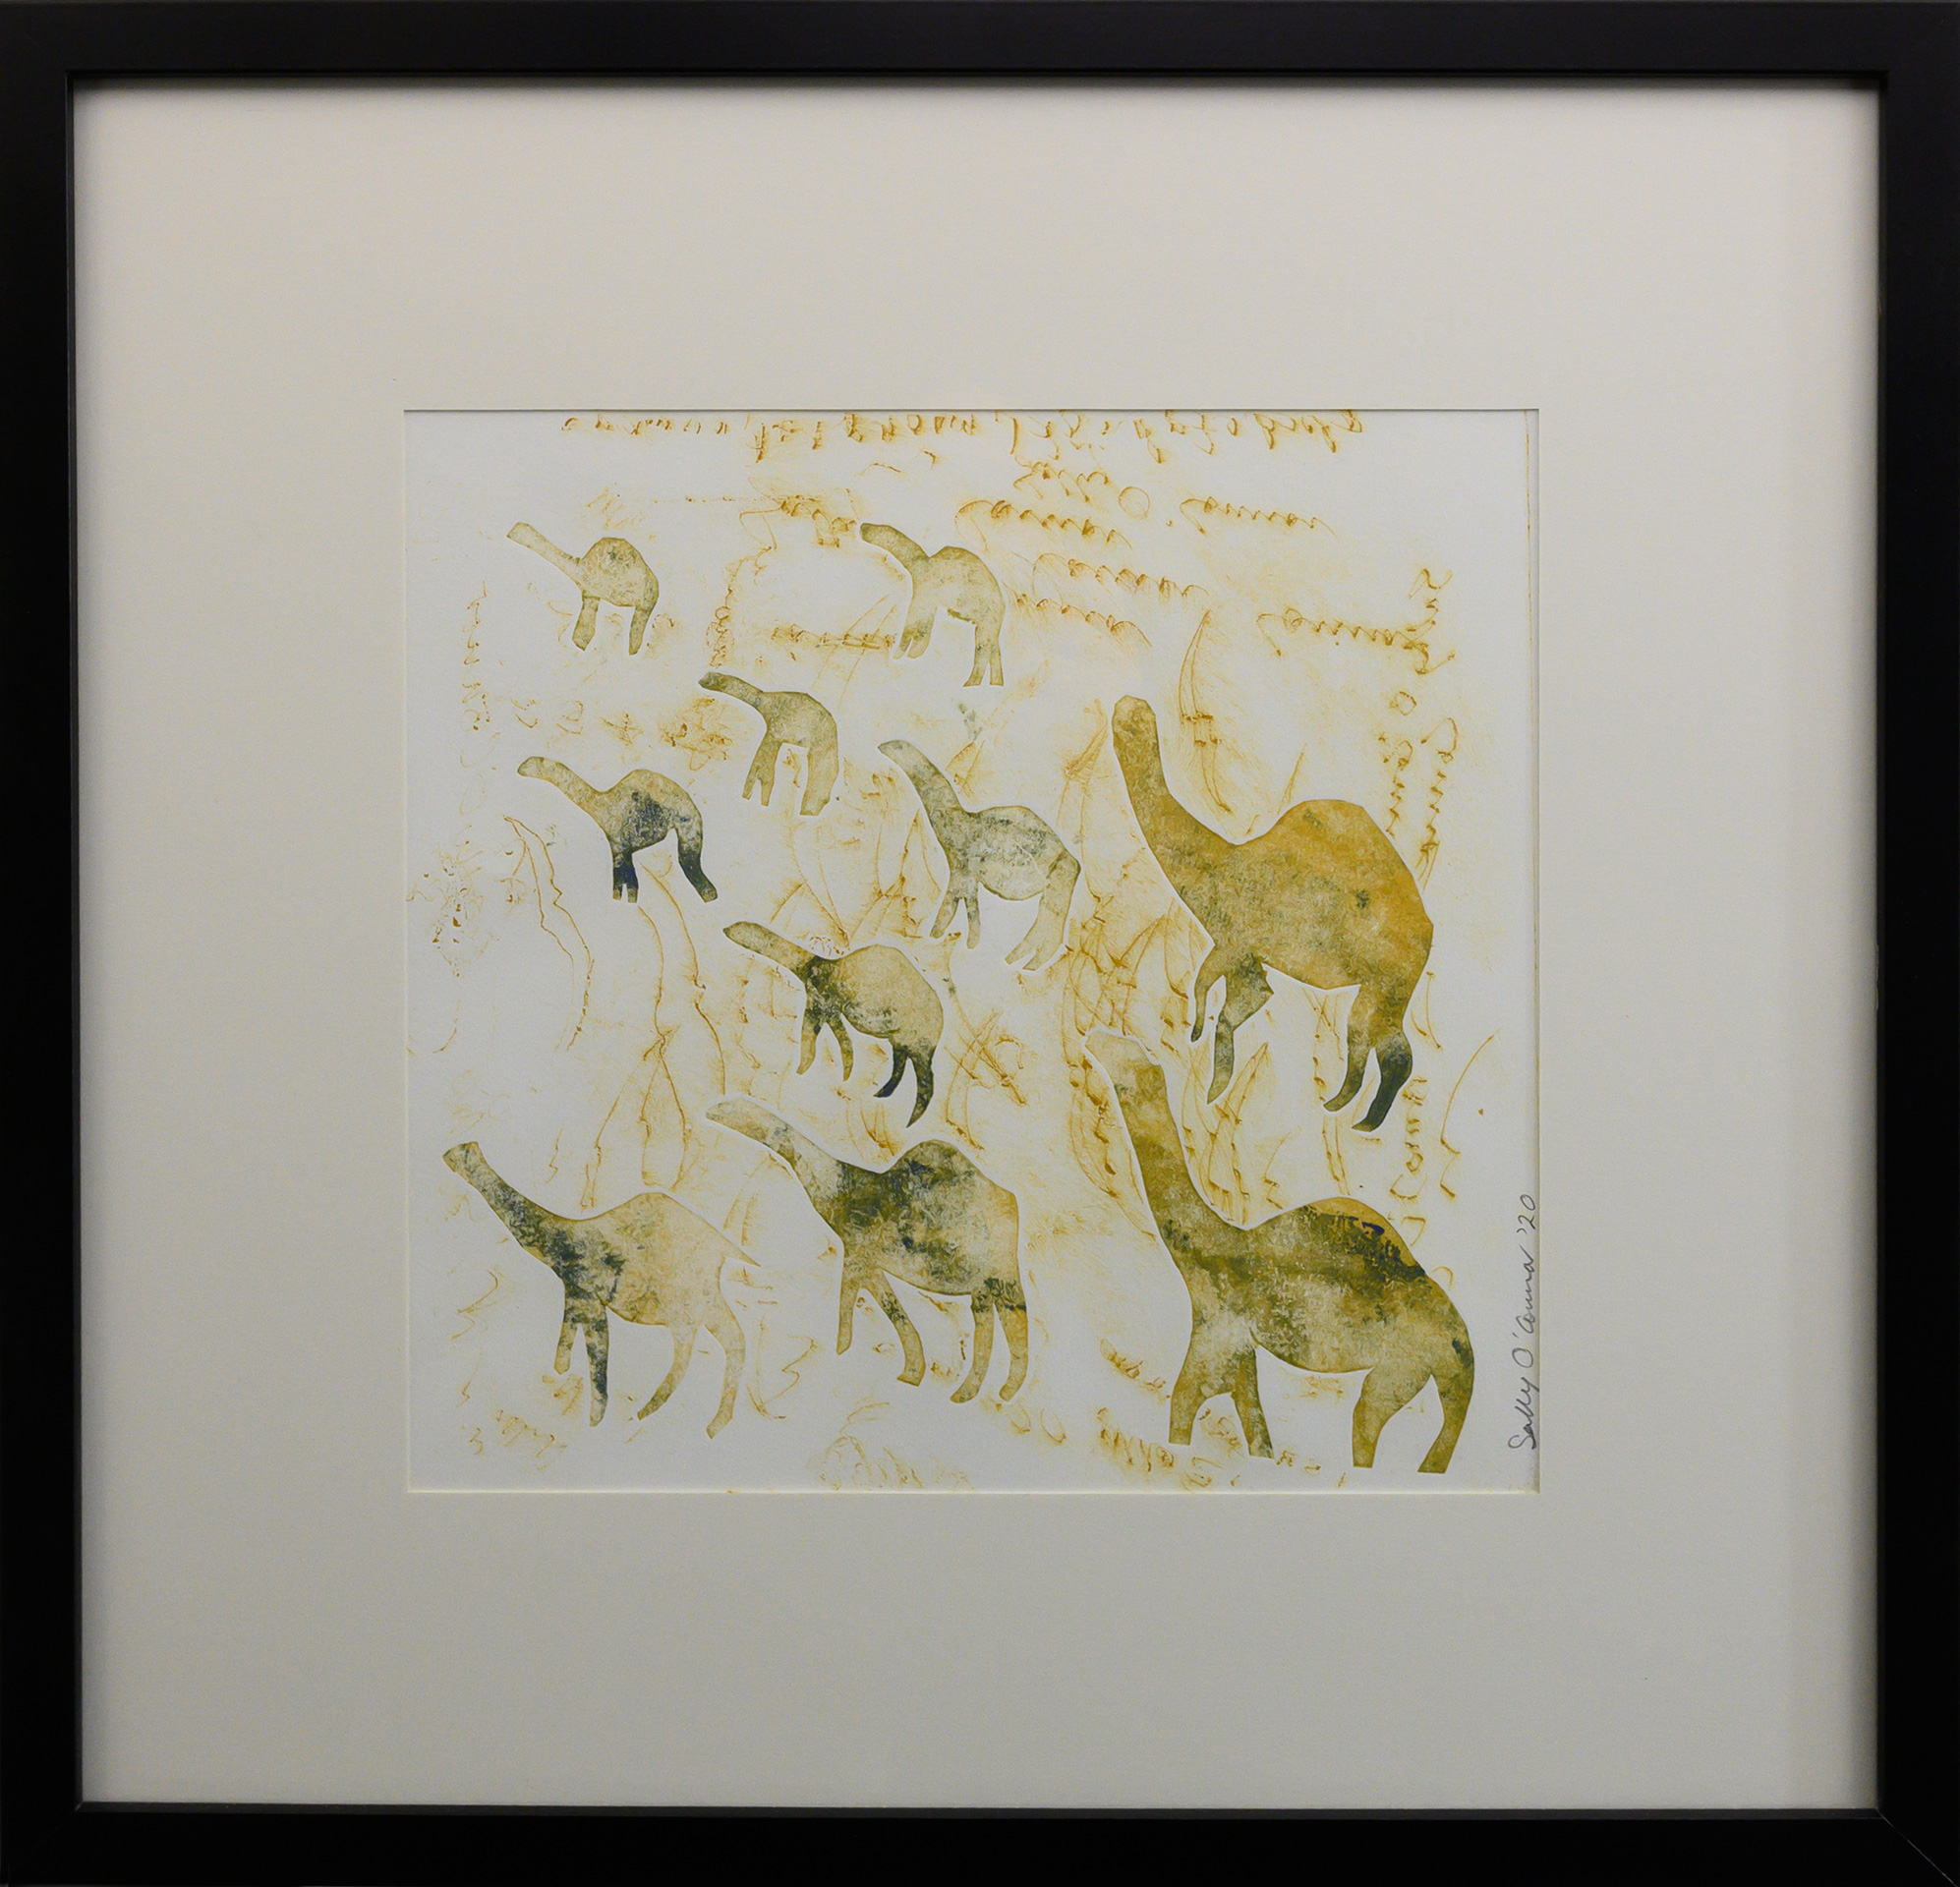 Framed artwork by Sally OConnor of simplistic yellow/green camels